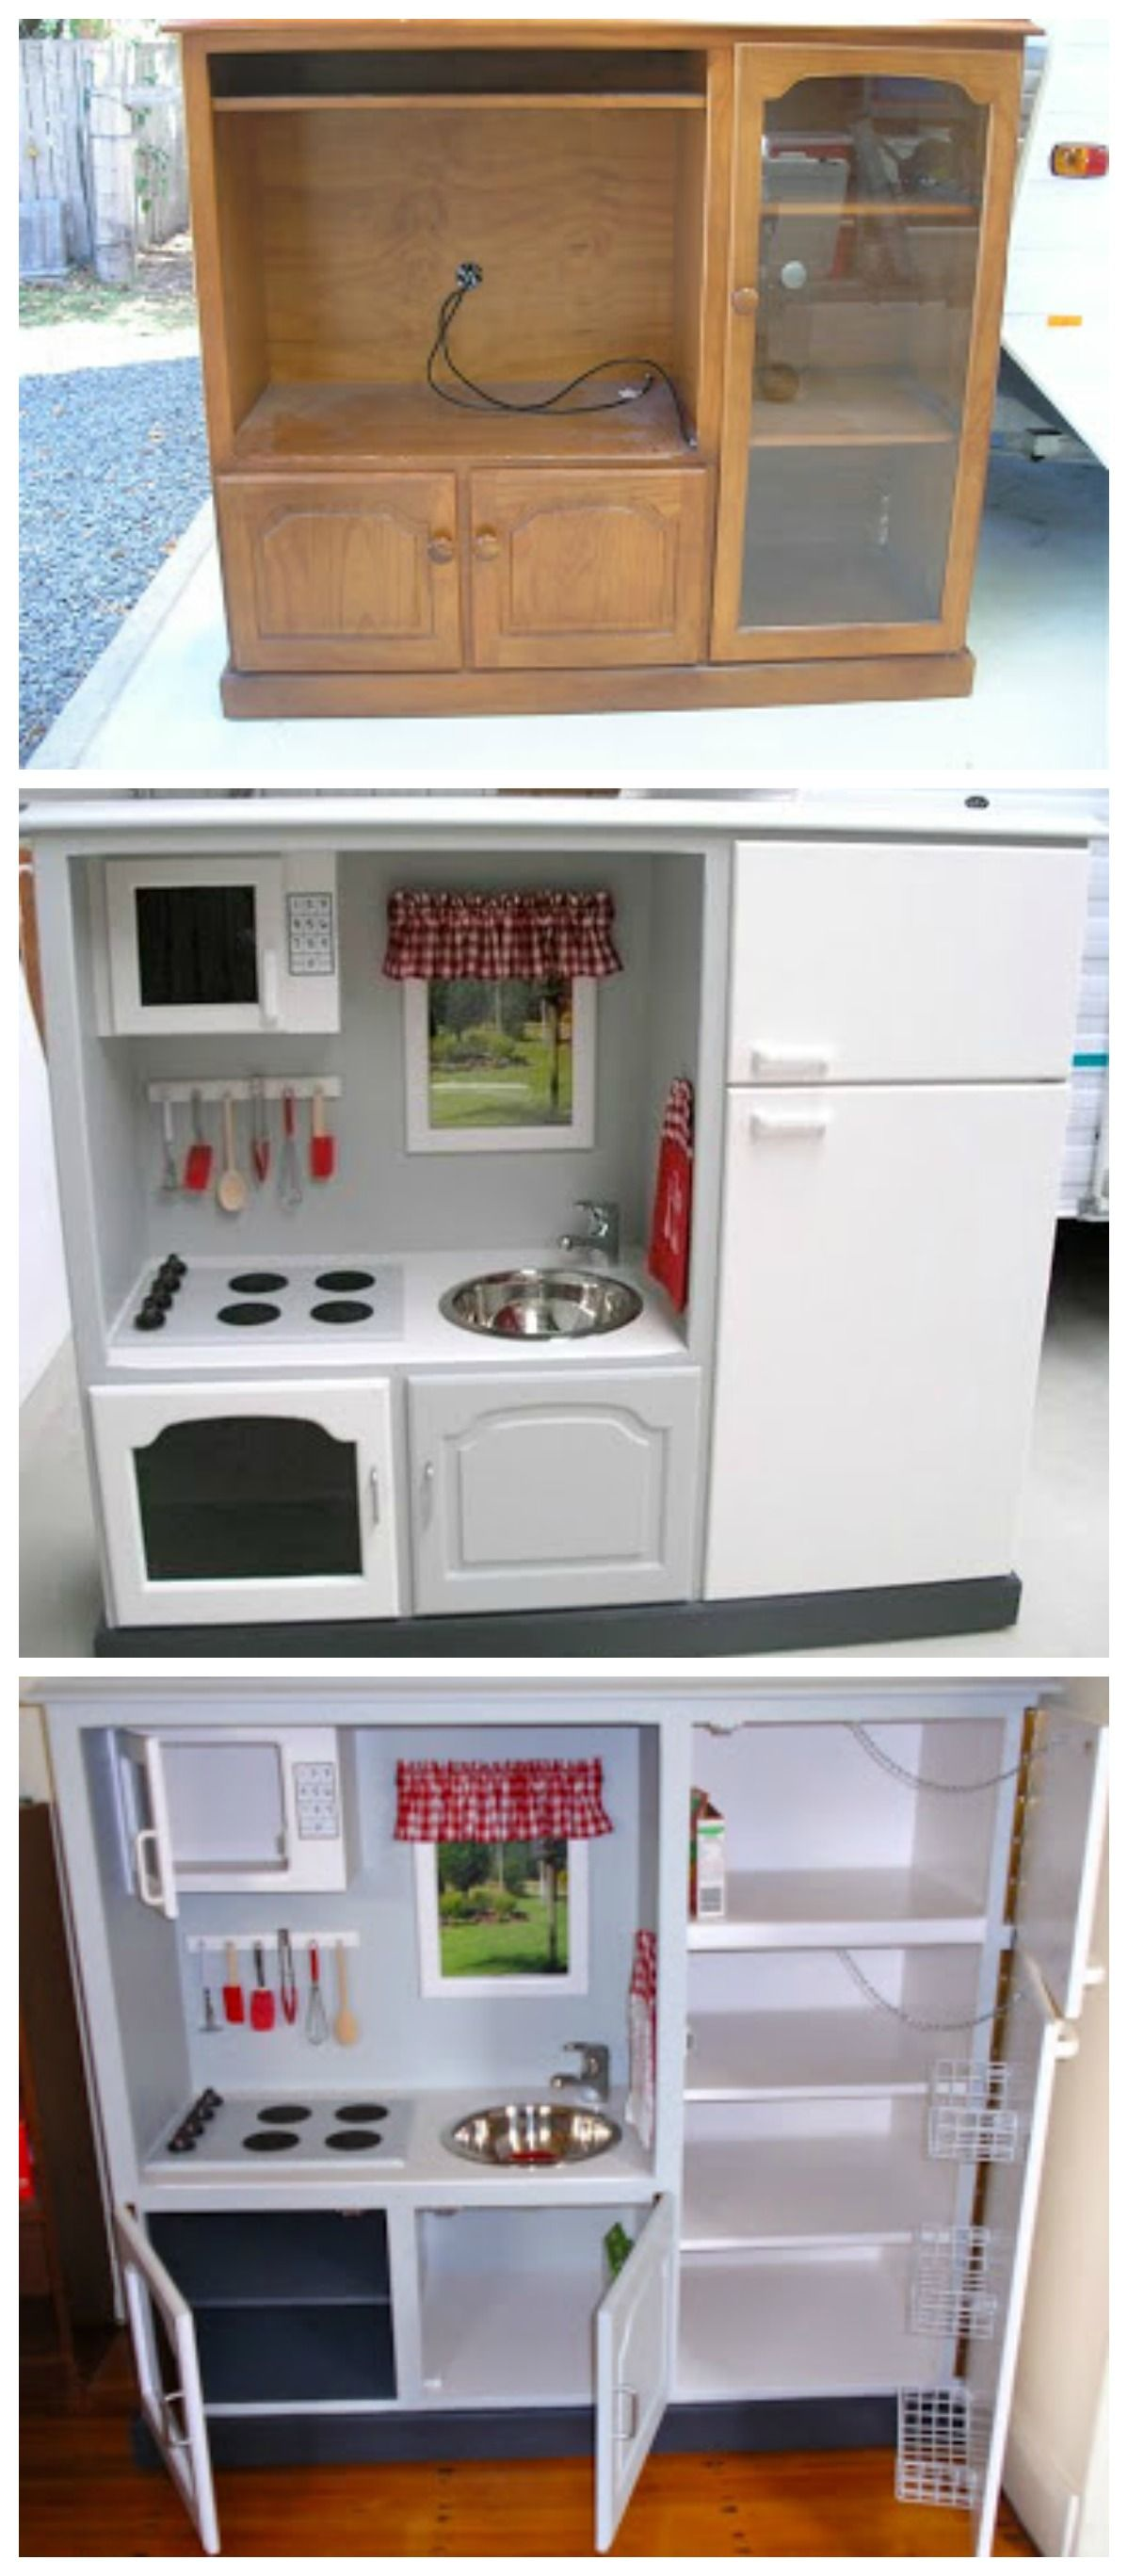 20 creative ideas and diy projects to repurpose old furniture rh pinterest com